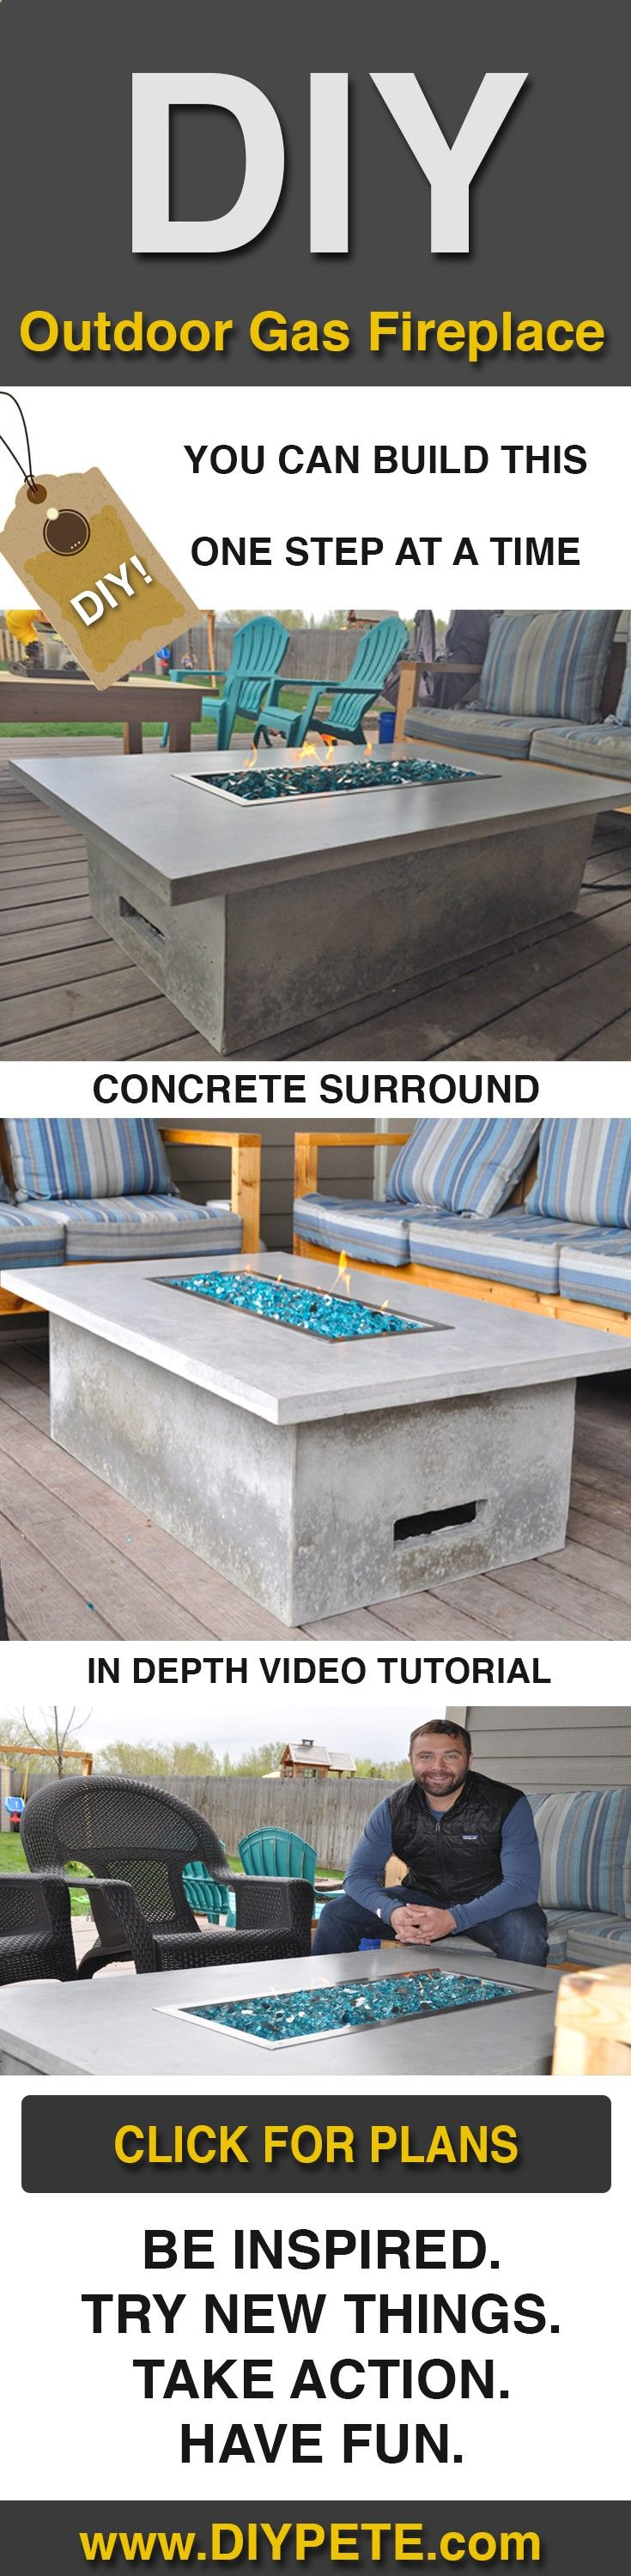 ebd6d2e829d1a5bf65f603279e3ae8df Top Result 50 Awesome Steel Outdoor Fireplace Gallery 2018 Hiw6